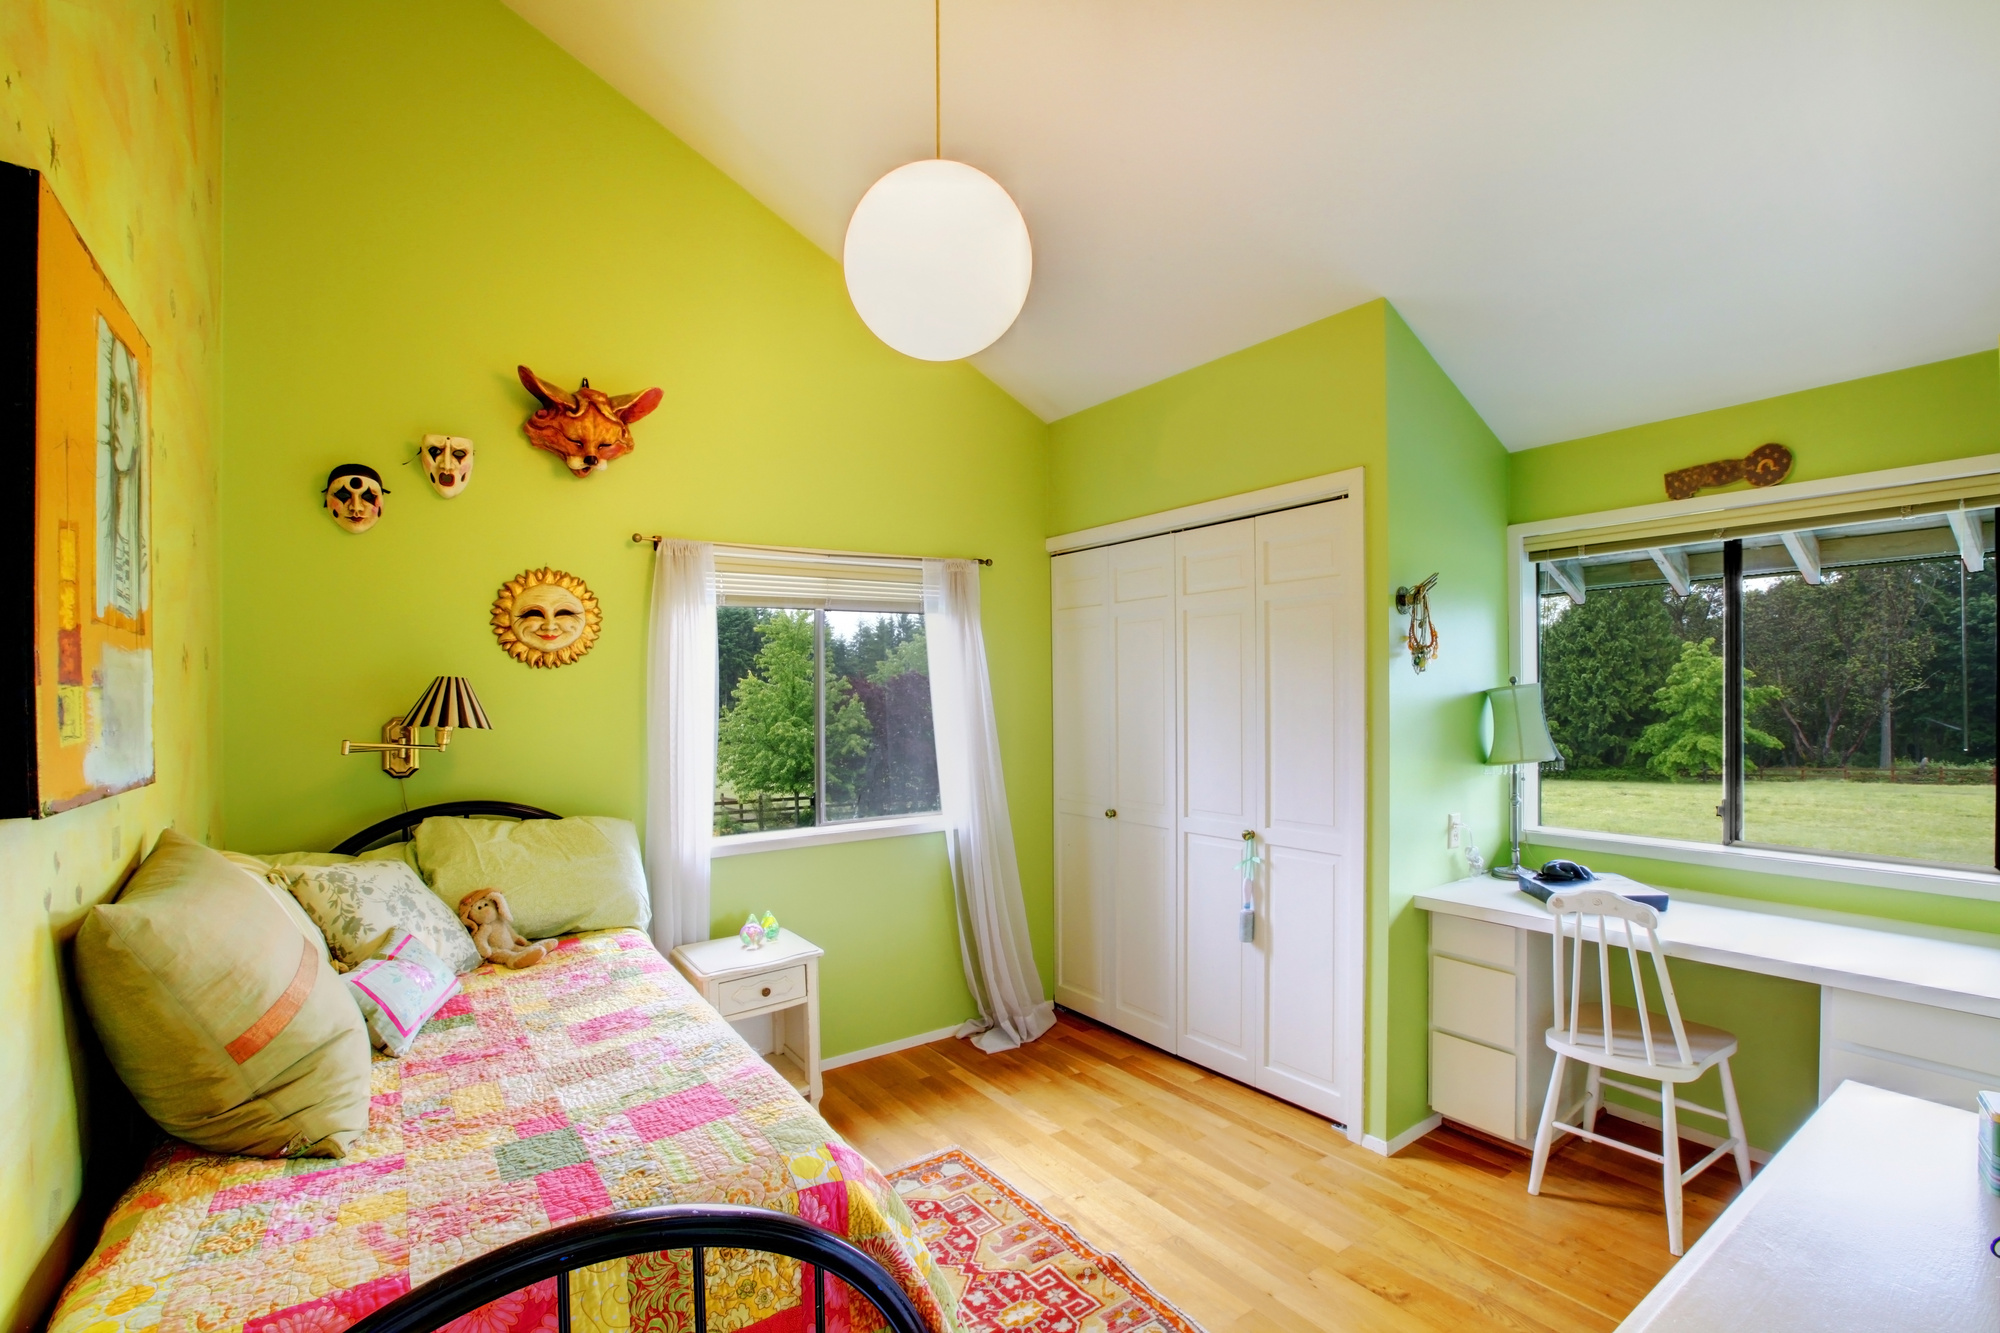 5 Trendy Kidsu0027 Room Paint Colors: How To Paint A Bedroom That Your Child  Will Love